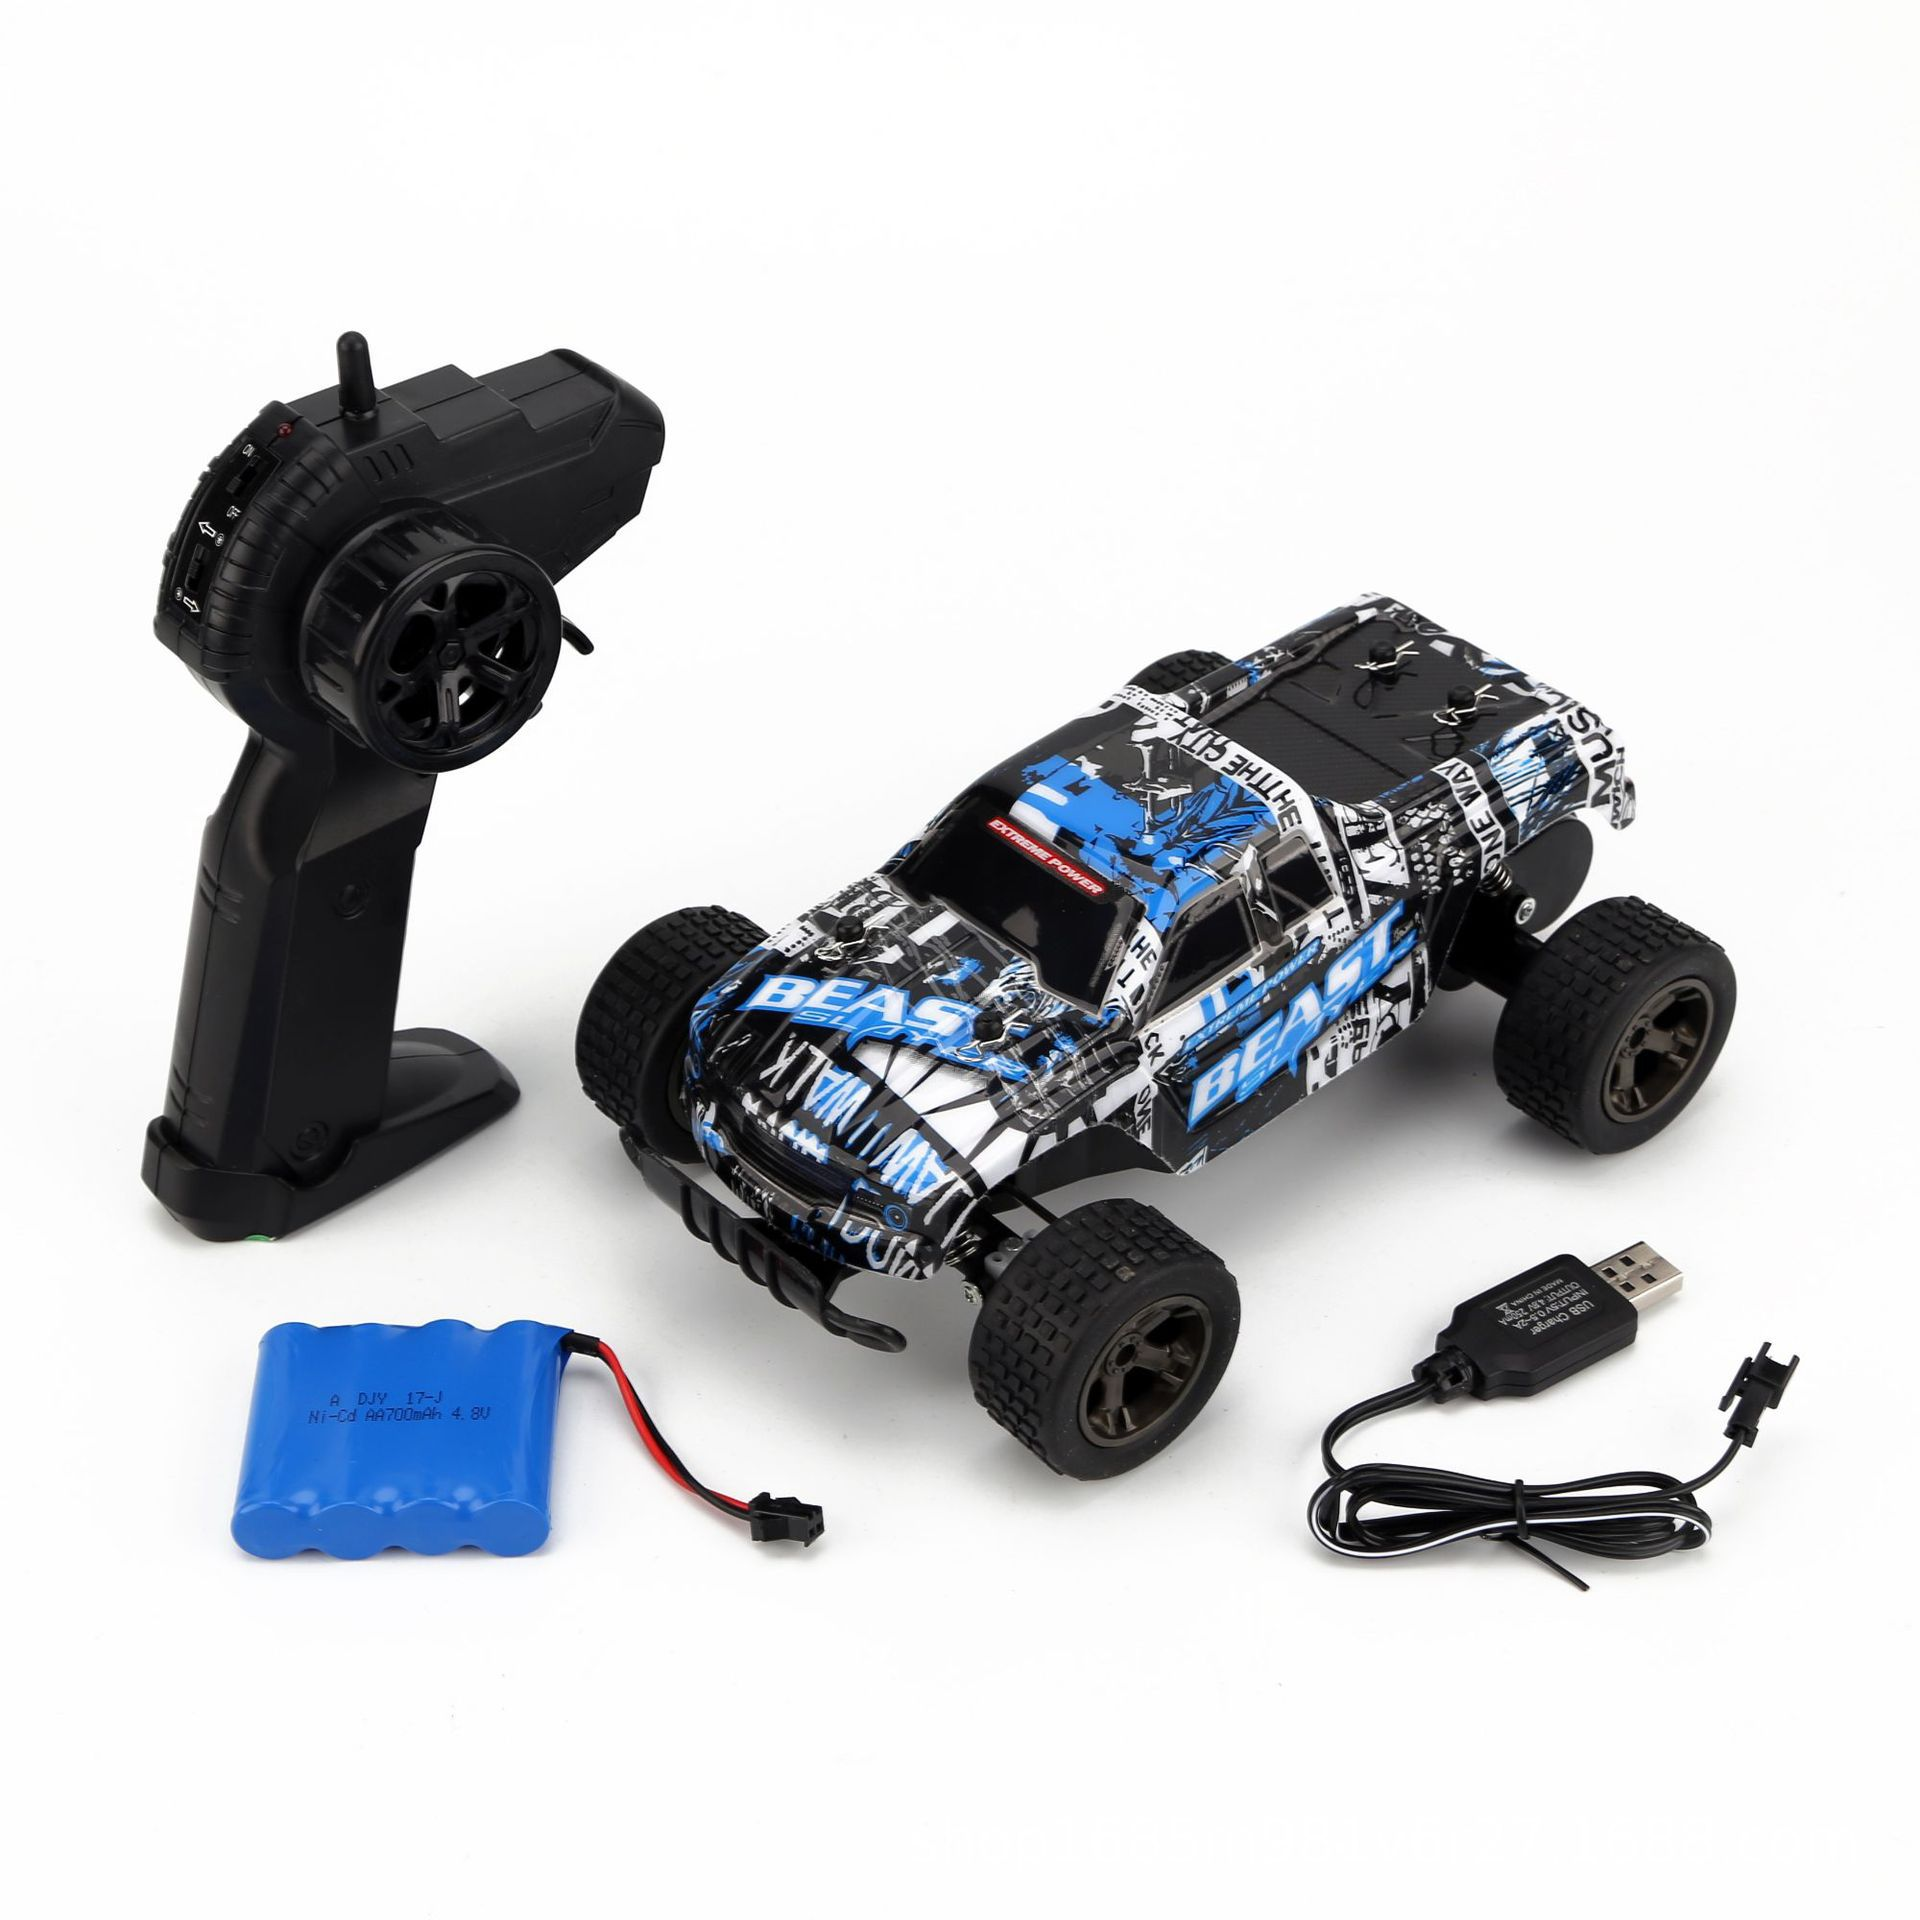 1:20 High Speed Racing 2.4g 2wd Tracked Remote Control Model Off-road Toy Radio-controlled Remote Control Off-road Vehicle Toy